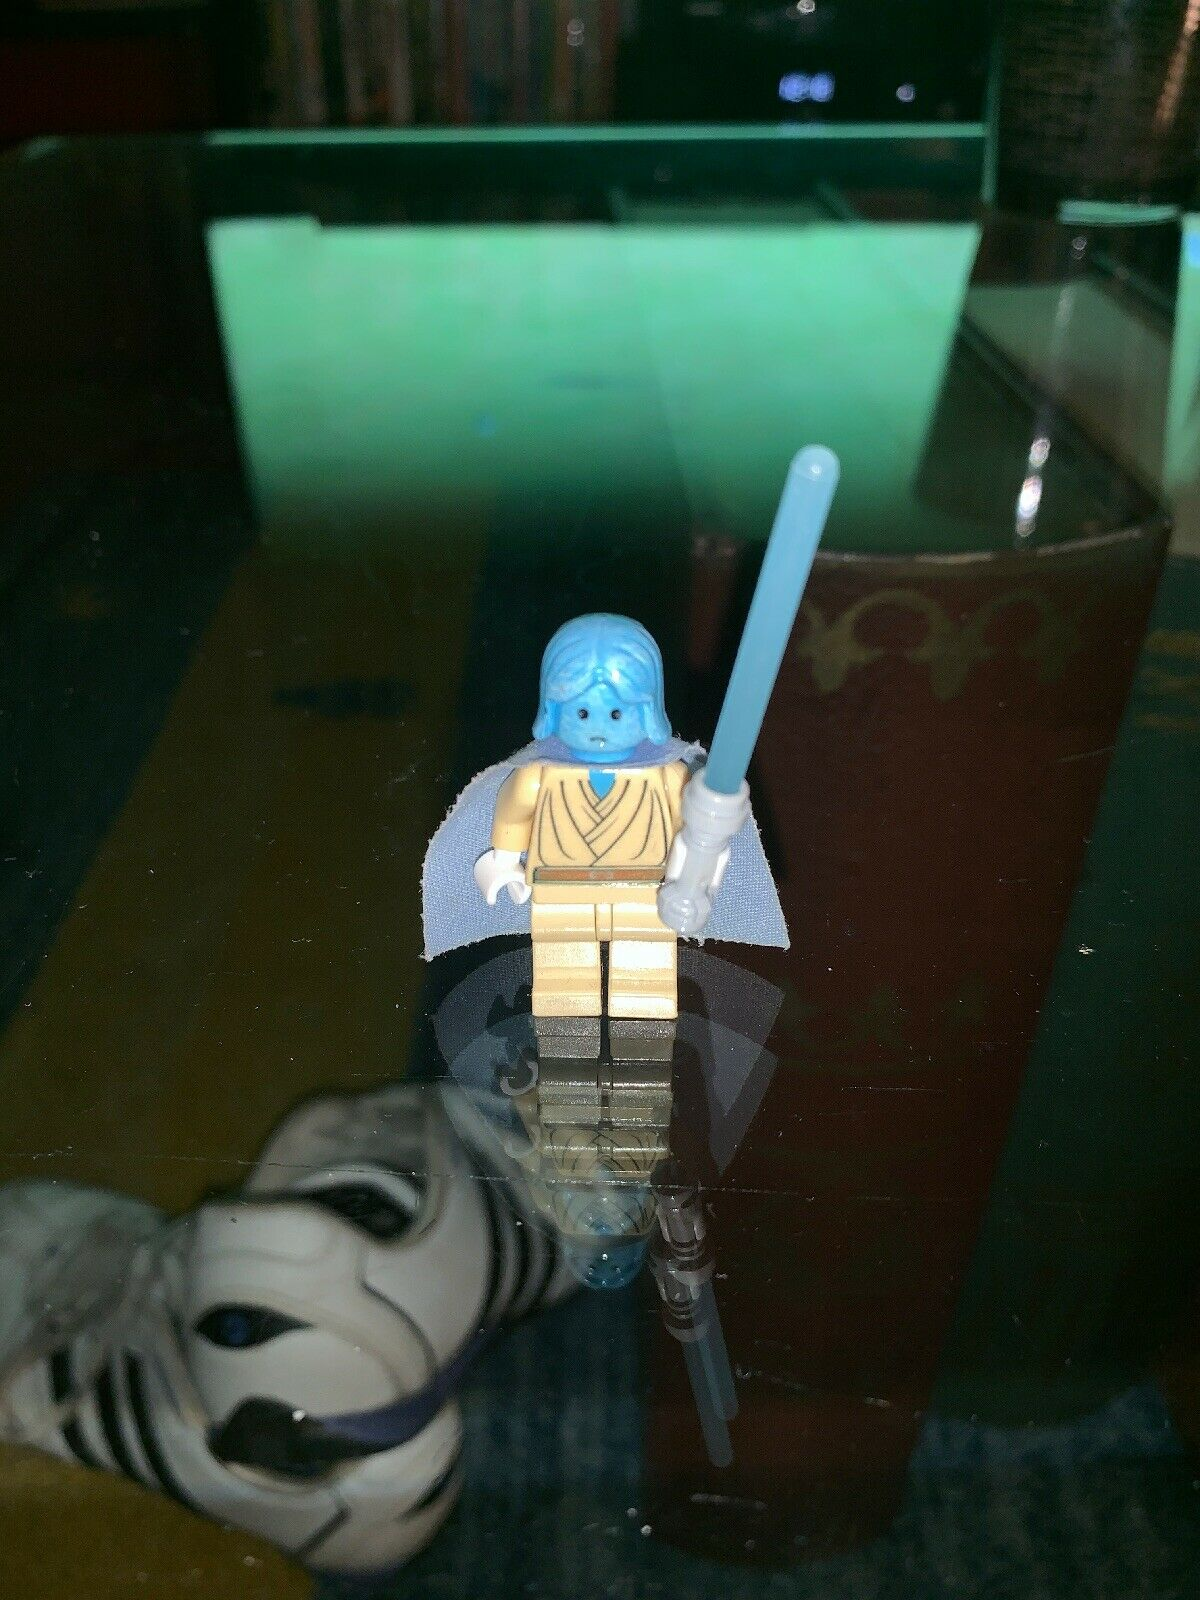 Lego Star War War War Ghost of Anakin Glow in the Dark Ultra Rare will not find anywhere ed3a8b